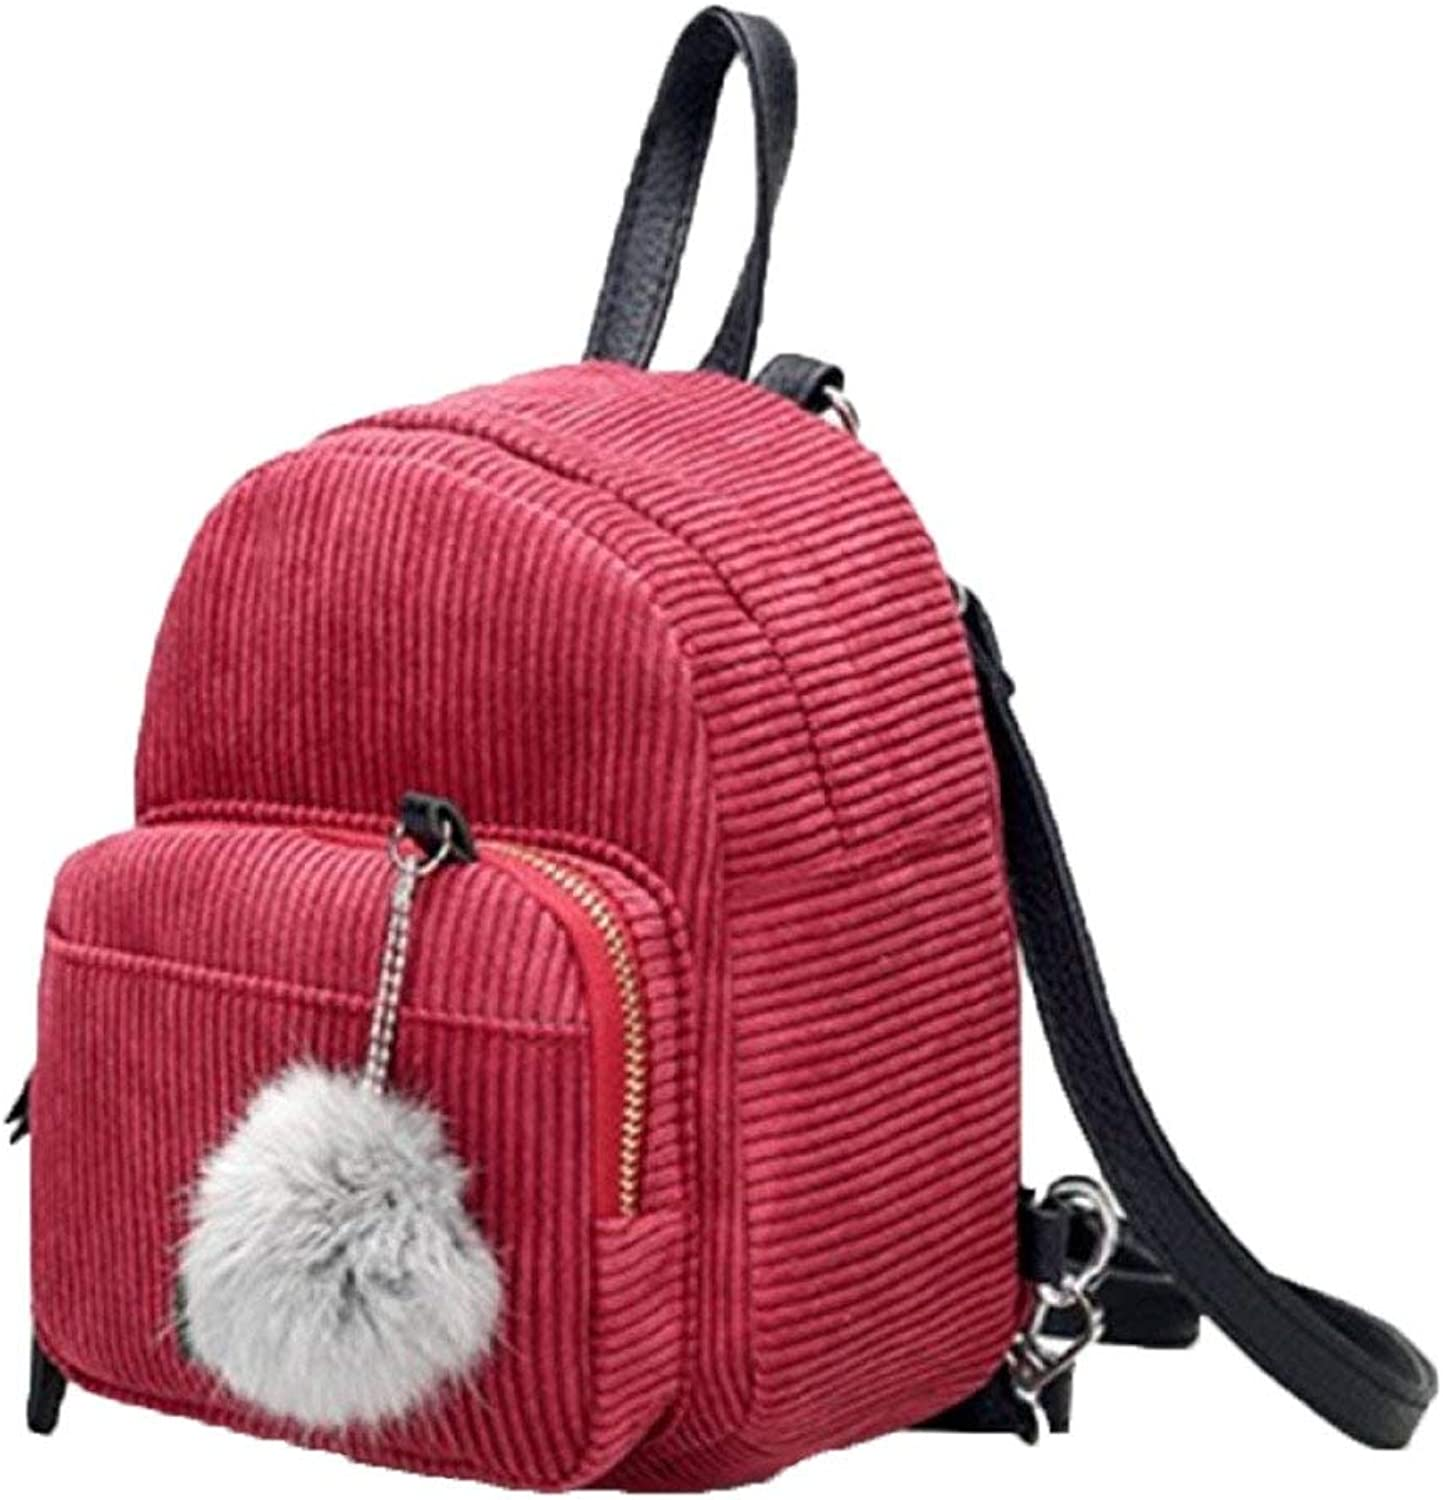 Campus Backpack Female Bag Casual Canvas Backpack 2018 Hot Fashion Backpack (4 colors Optional) School Rucksack (color   Red, Size   Medium)